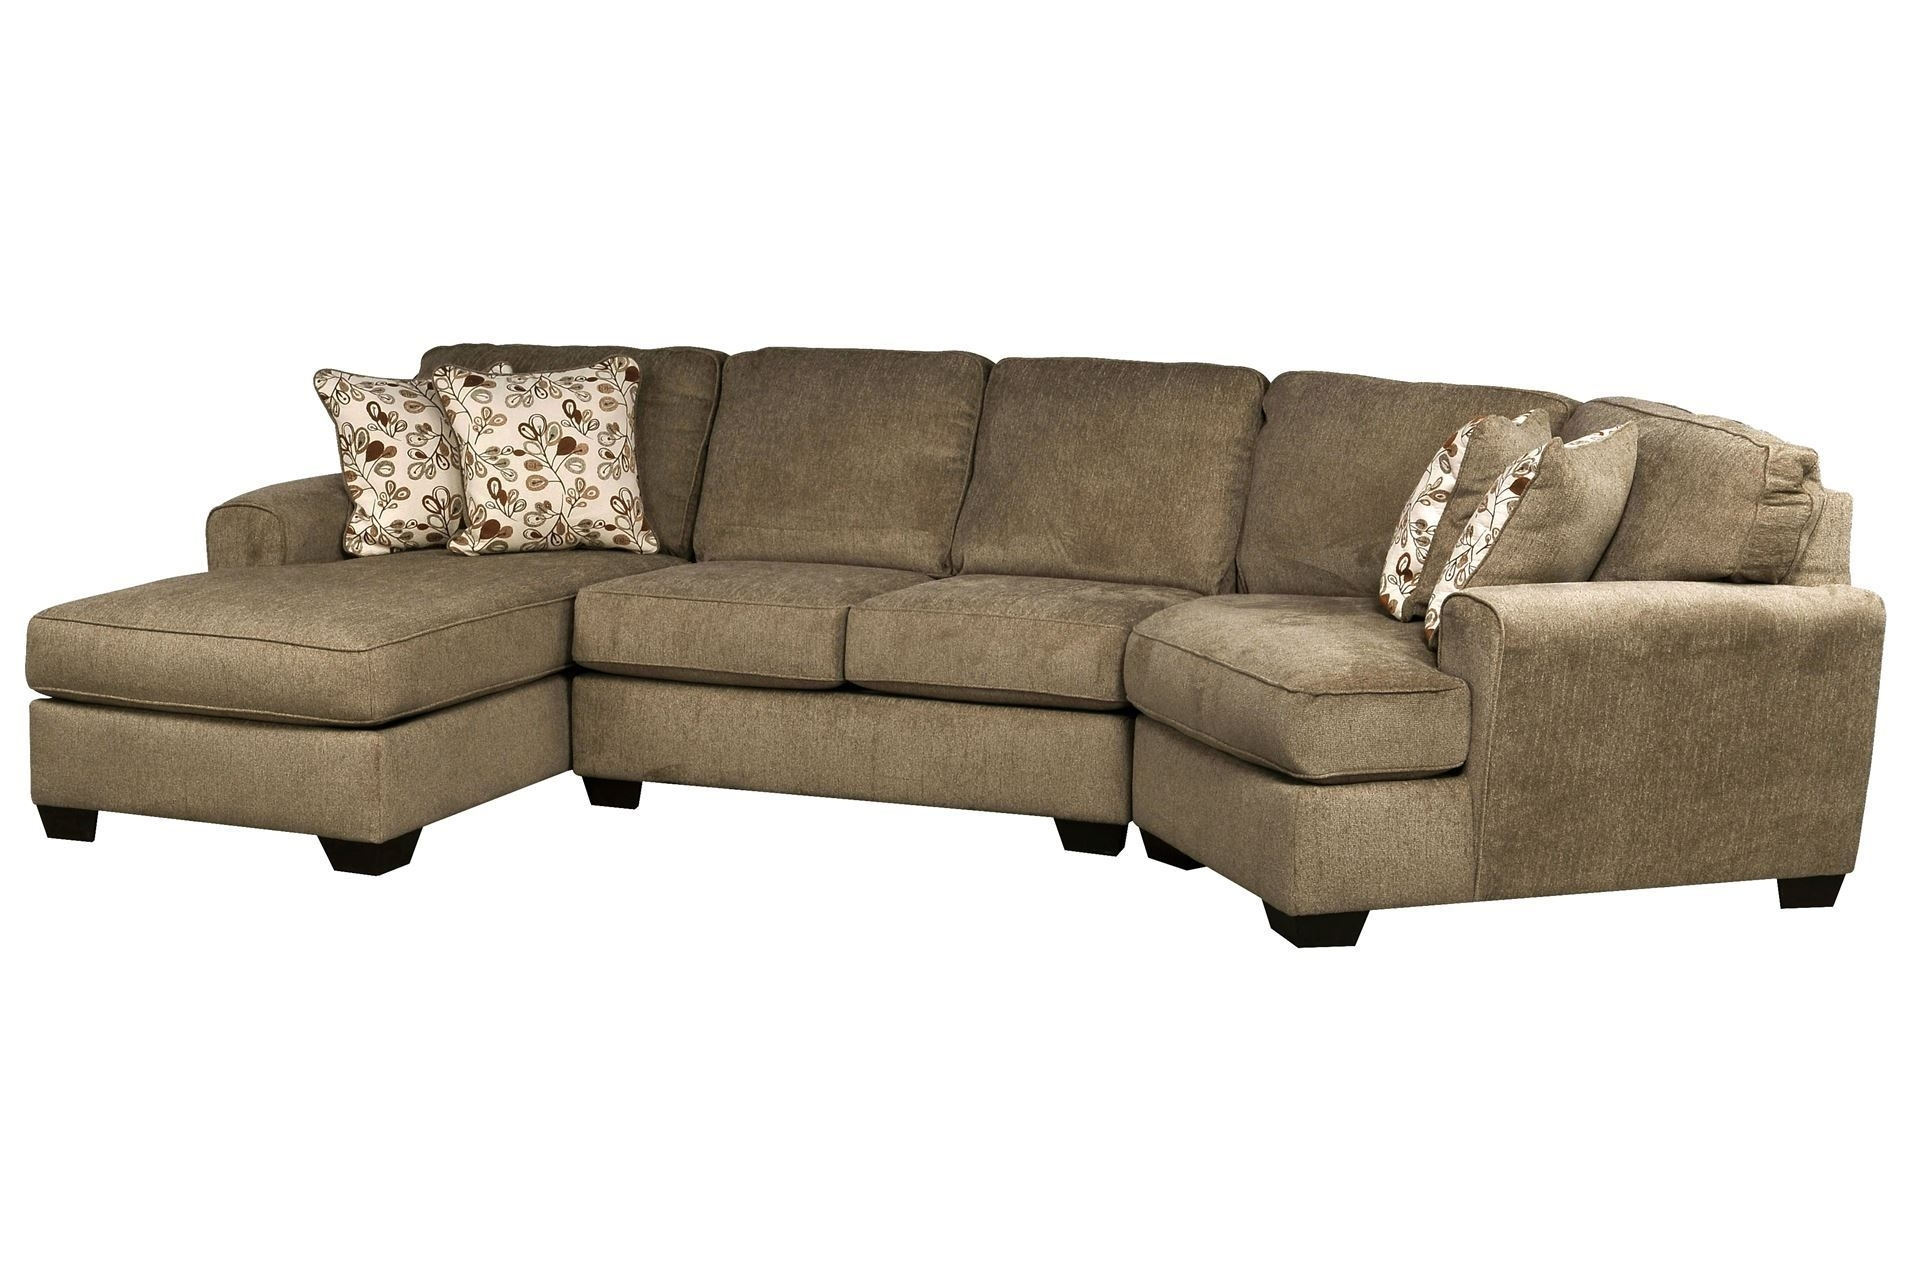 3 Piece Sectional Sofa Dimensions | Two Birds Home For Malbry Point 3 Piece Sectionals With Laf Chaise (Photo 17 of 25)